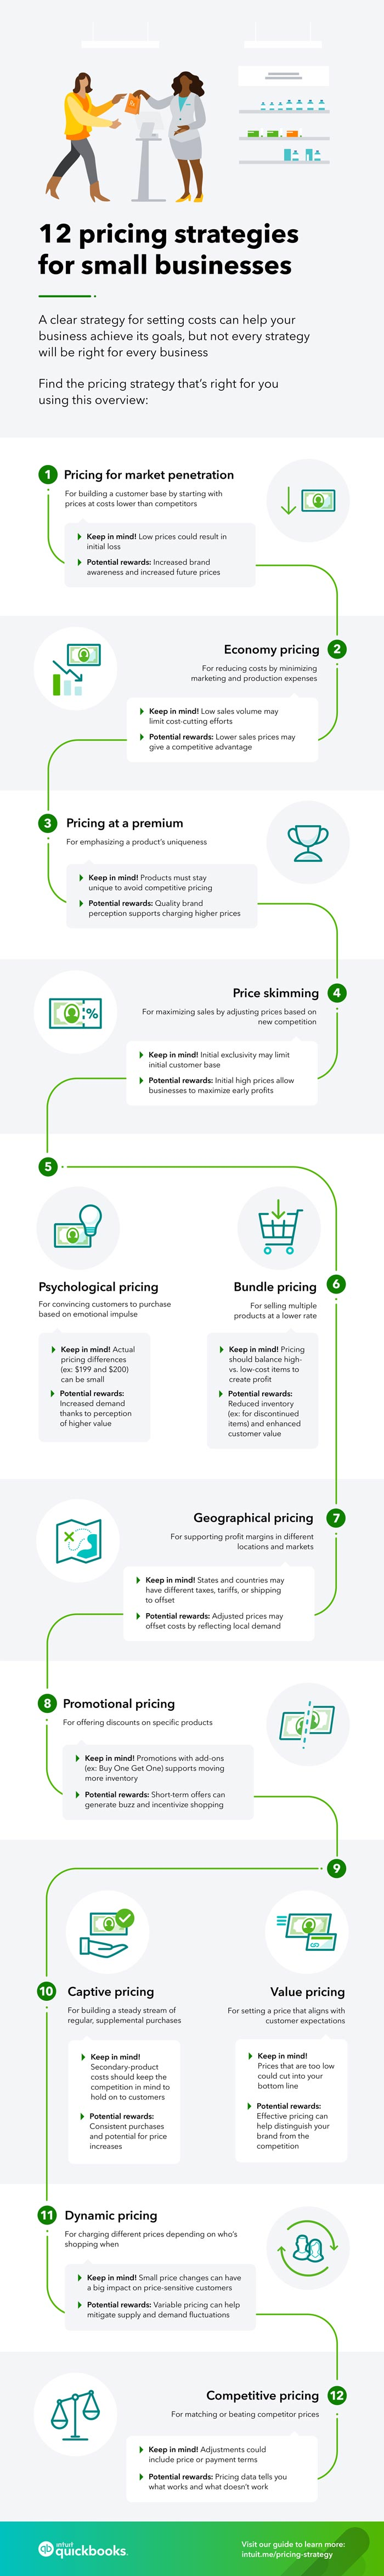 Pricing strategies for small businesses graphic